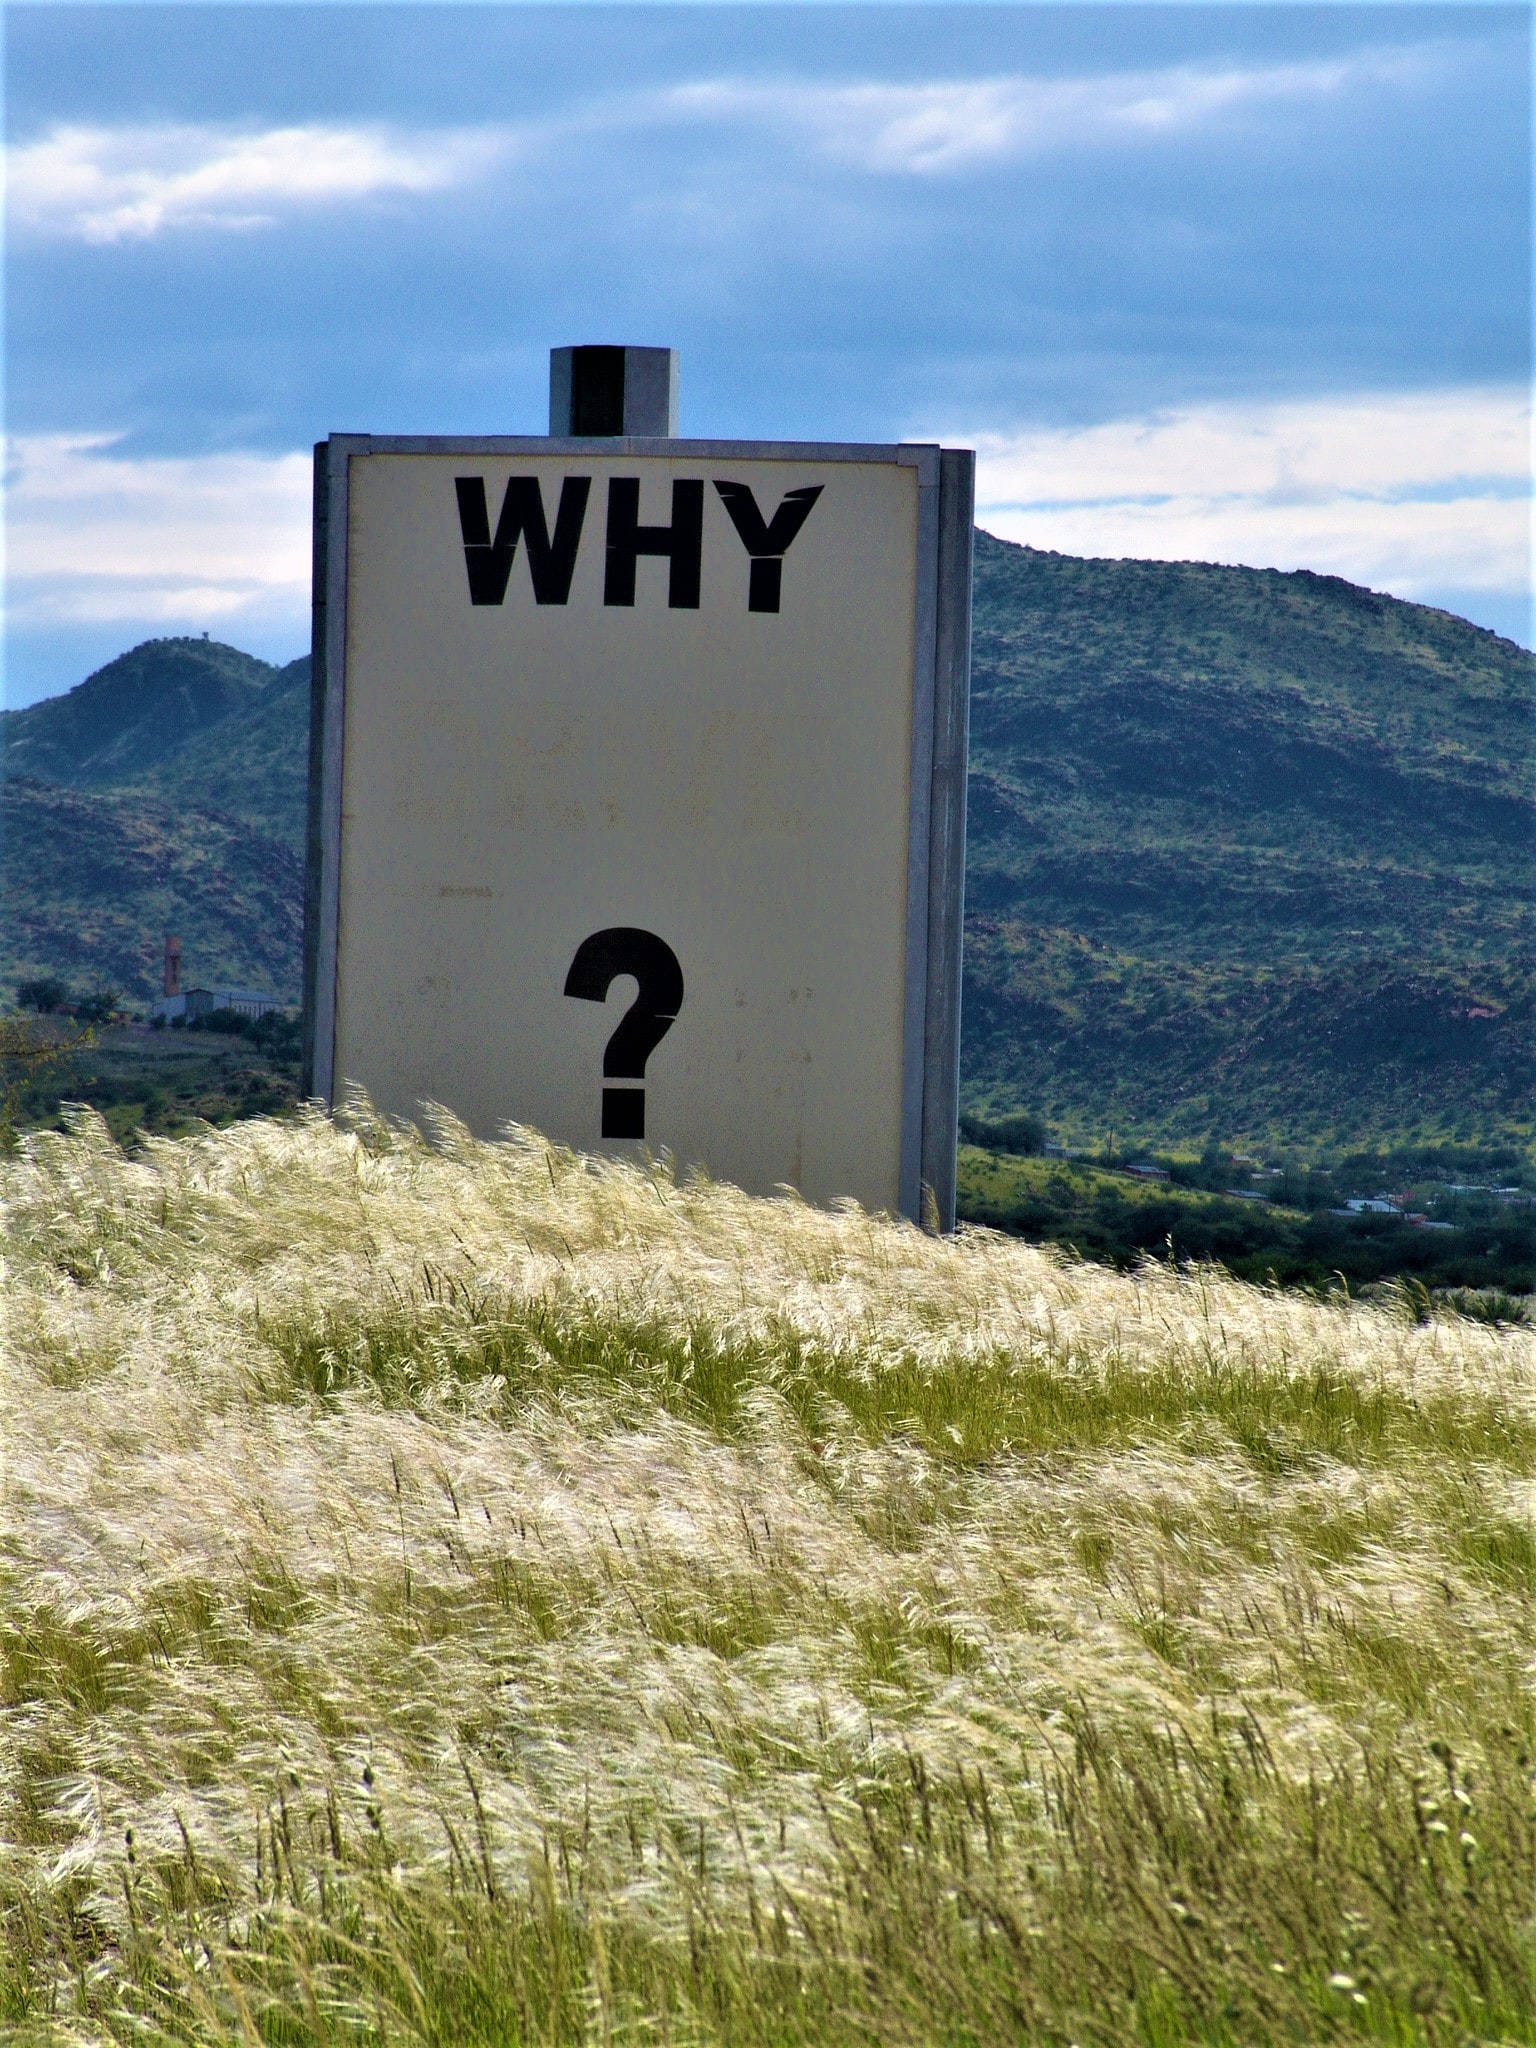 Why? signage near grass during daytime